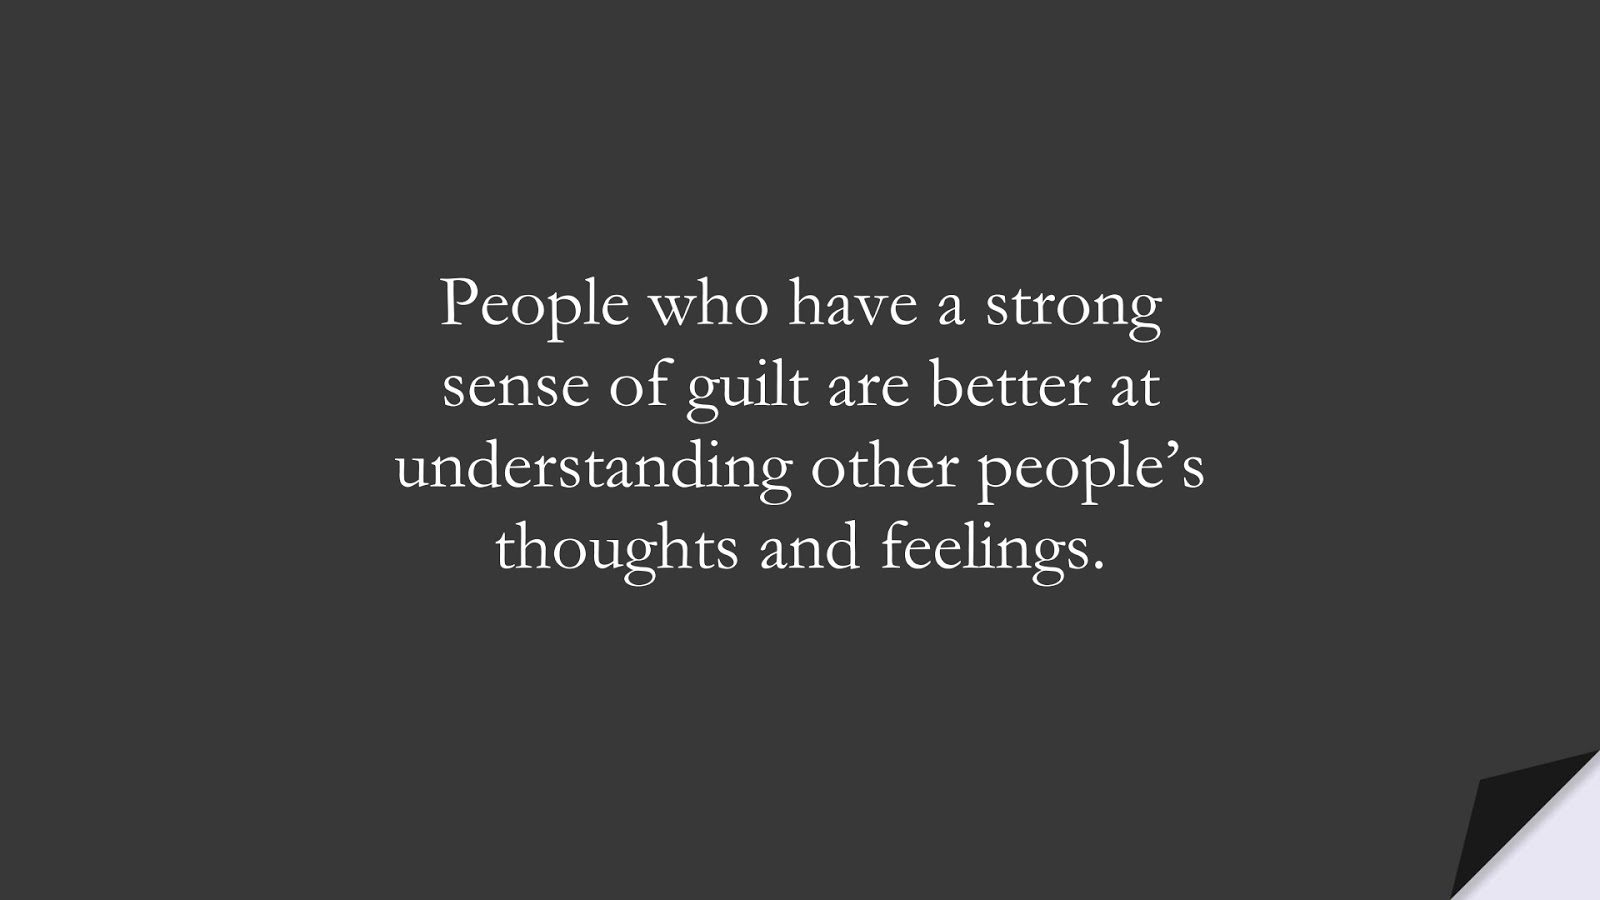 People who have a strong sense of guilt are better at understanding other people's thoughts and feelings.FALSE